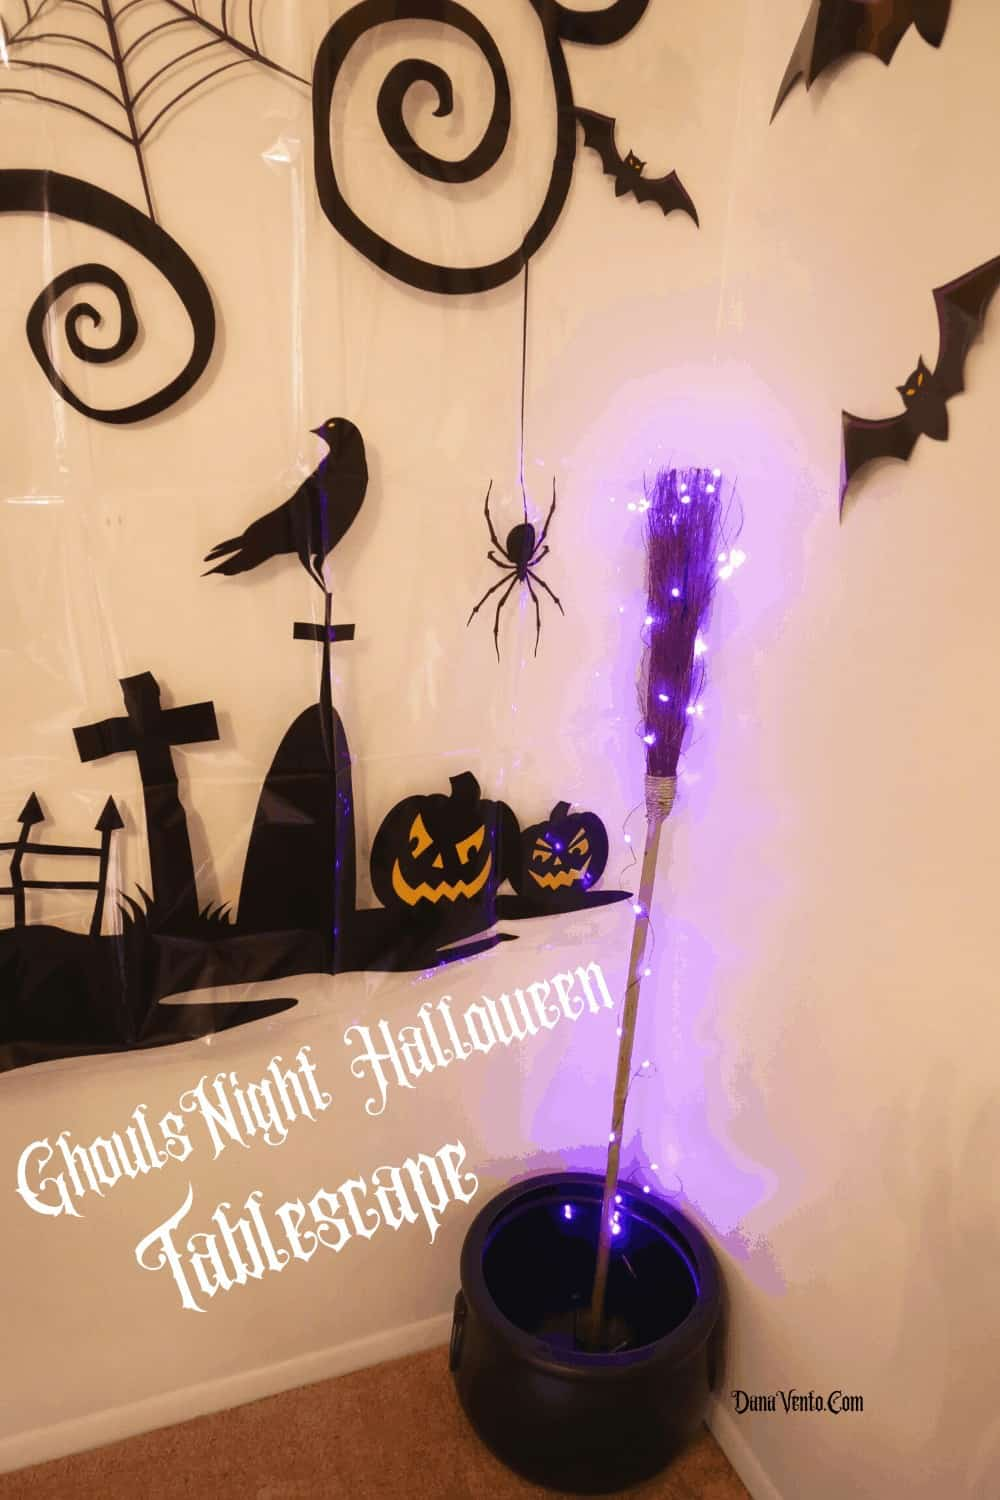 Broom in Cauldron for Ghouls night out